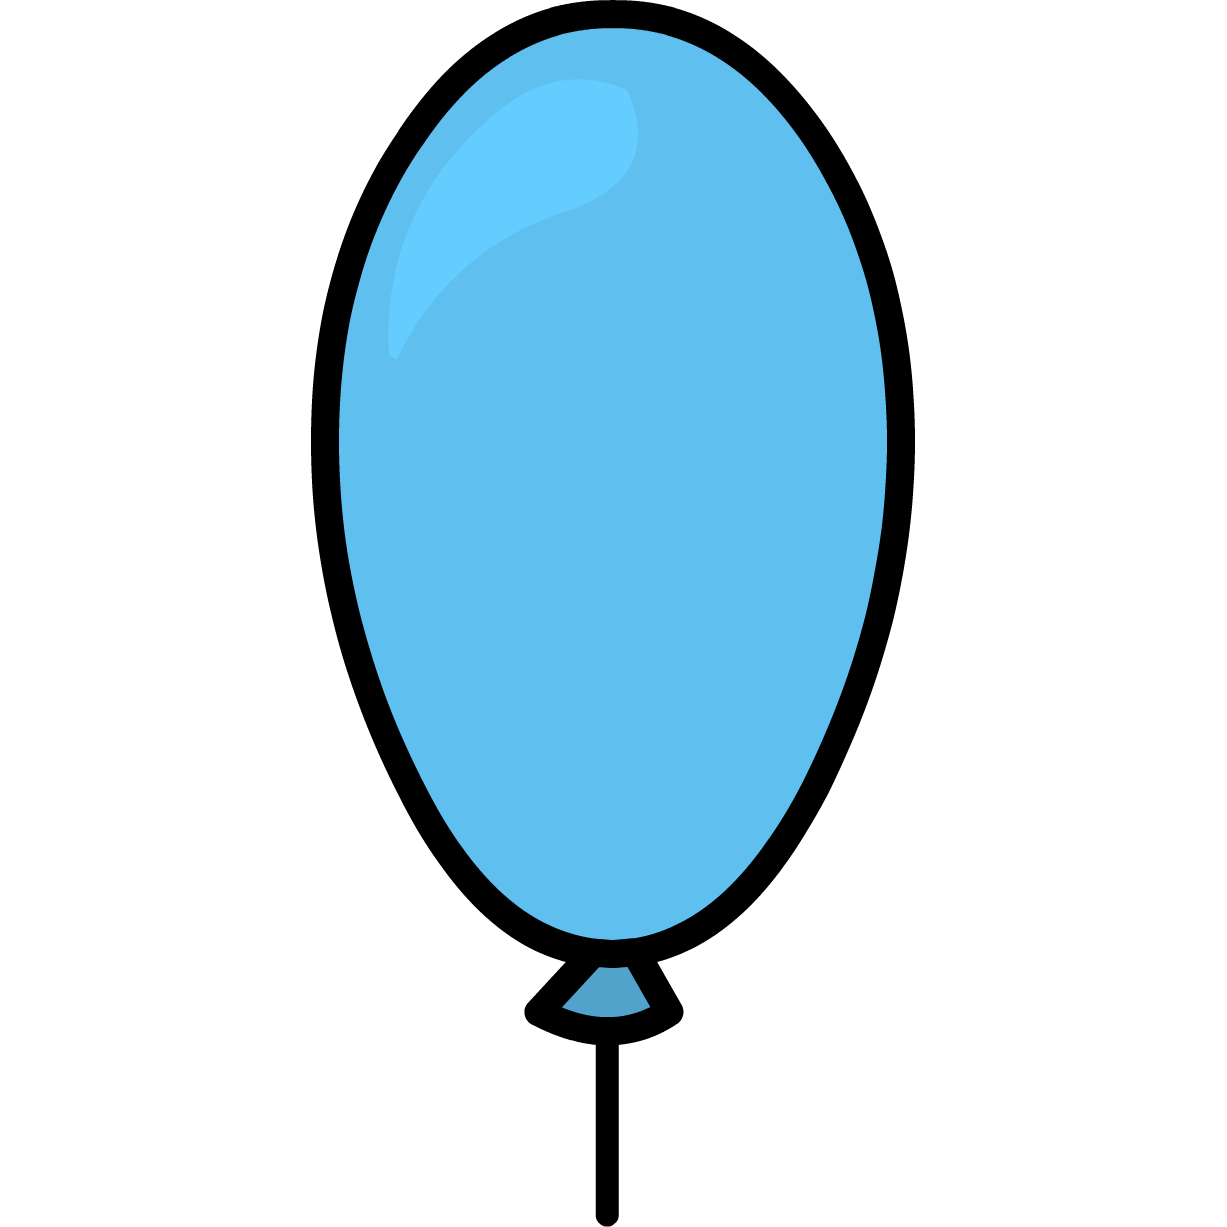 Balloon Png - ClipArt Best